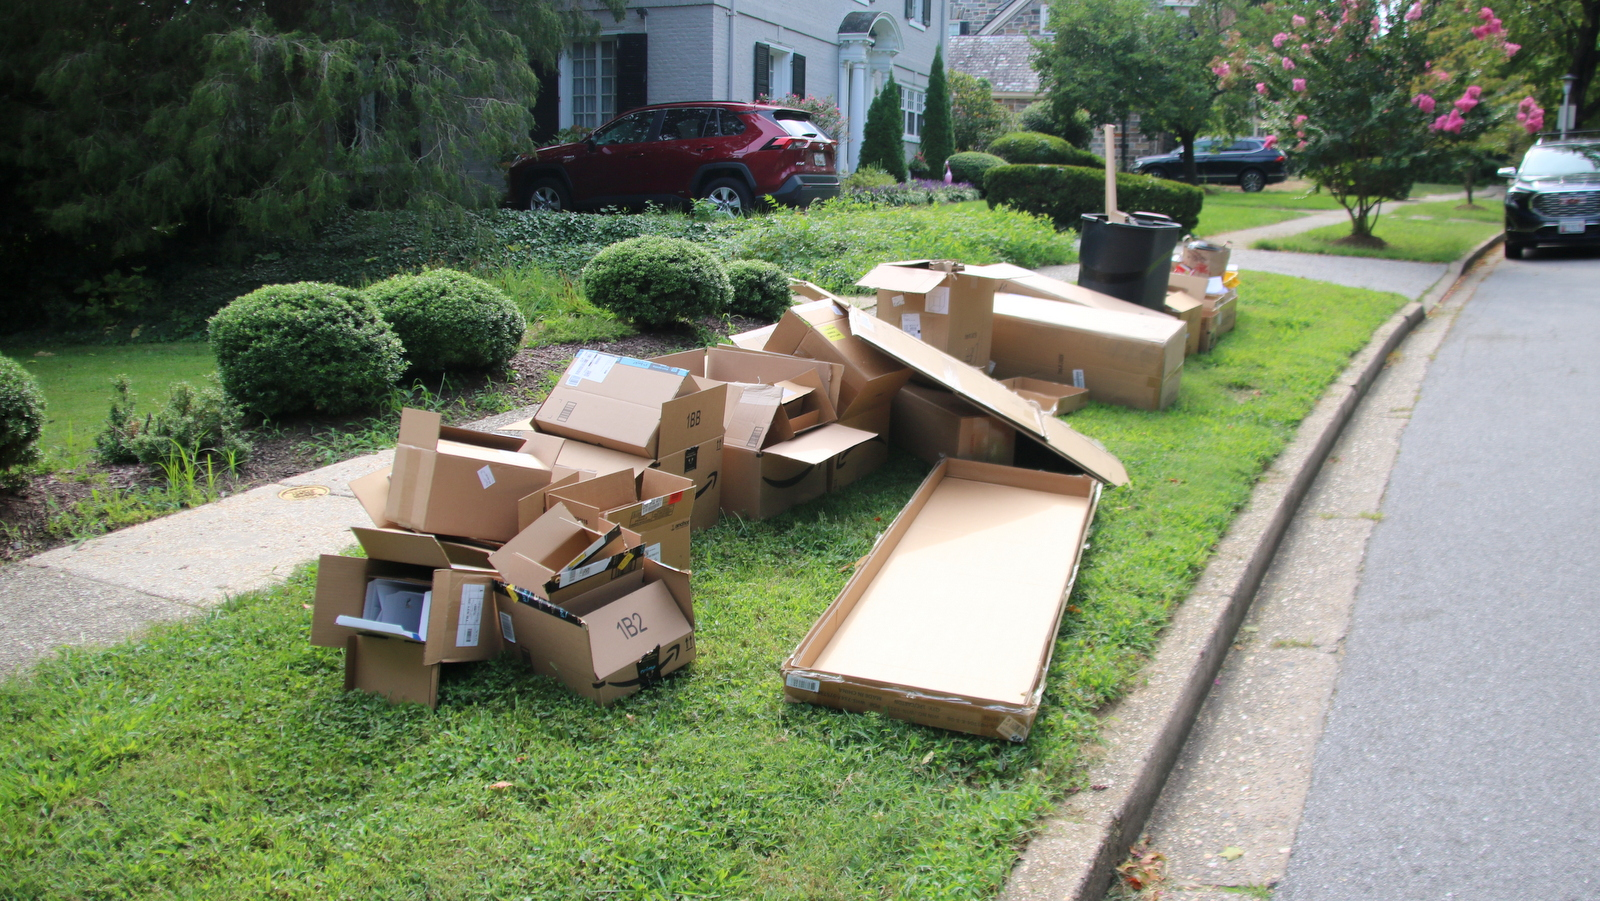 Cardboard and other recyclable materials are everywere in Baltimore, ahead of the city's suspension of recycling pickups. (Louis Krauss)